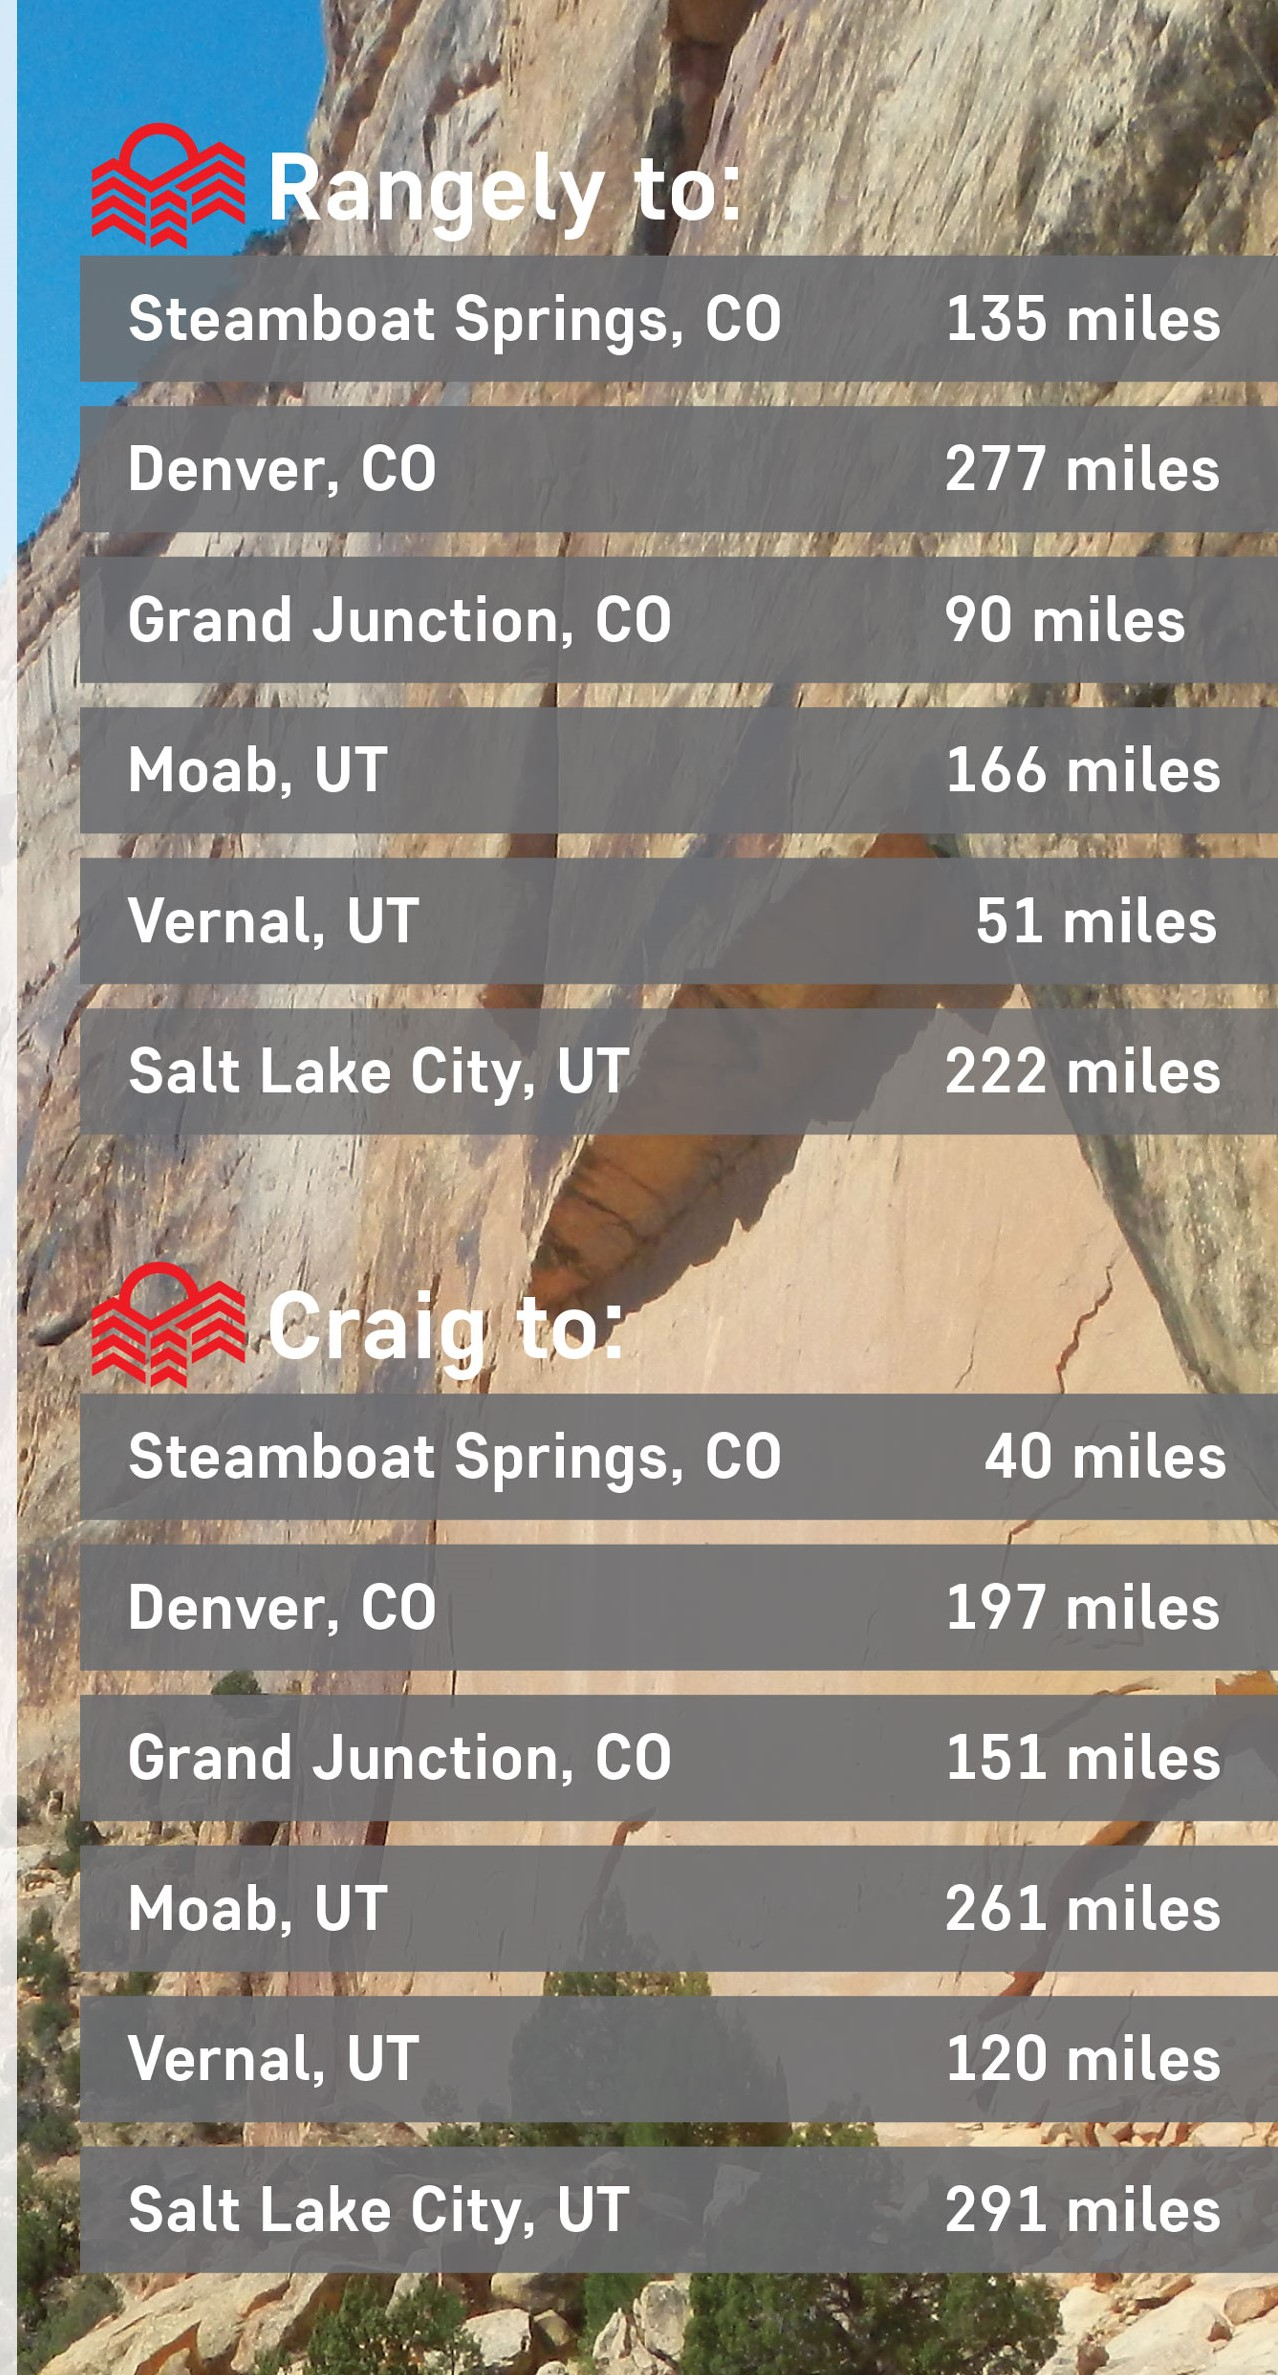 Rangely Craig Travel map